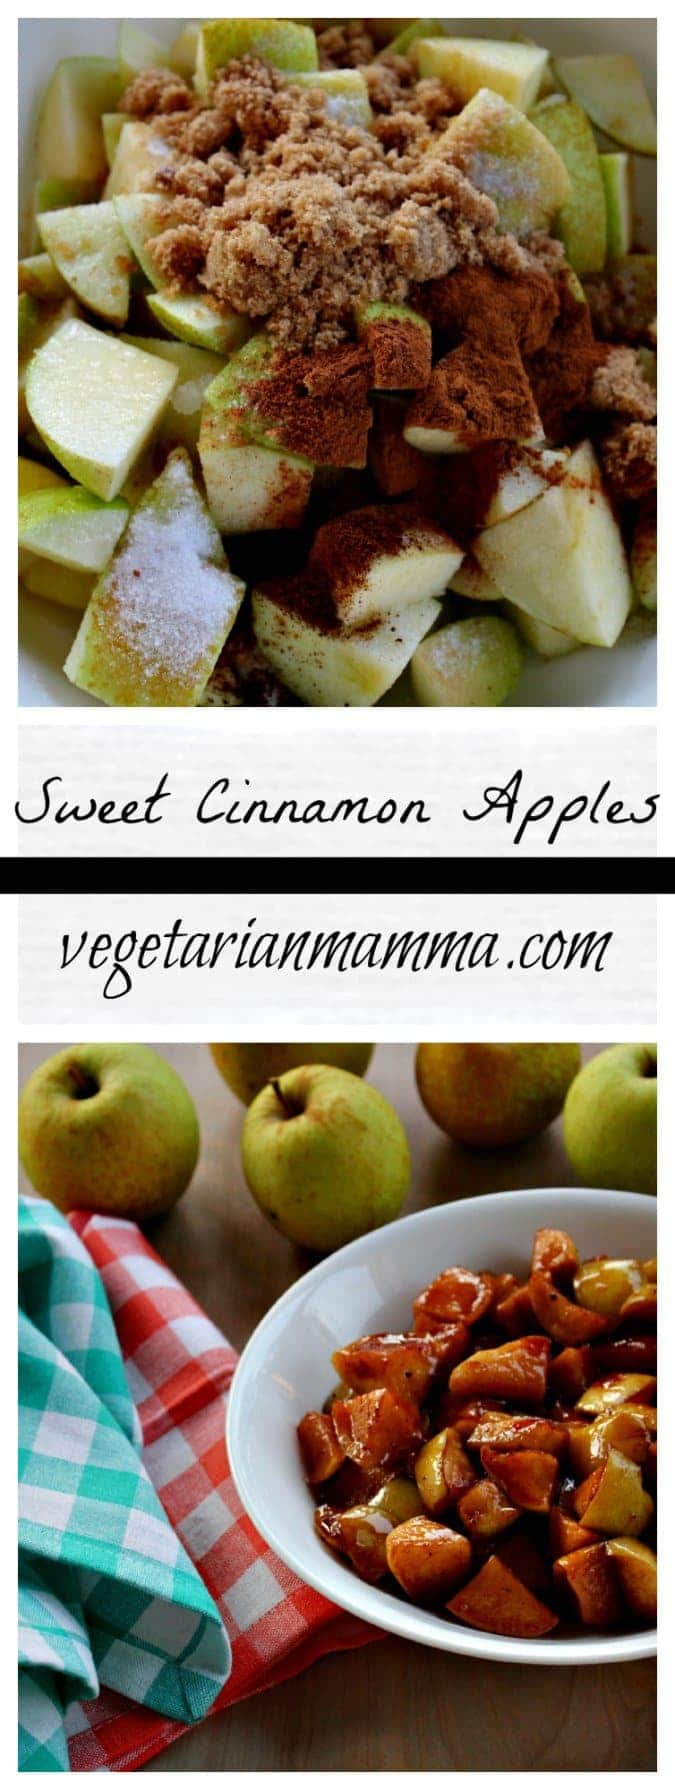 Sweet Cinnamon Apples #glutenfree @vegetarianmamma.com #dairyfree #nutfree #dessert #apple #apples @cinnamon #sweet